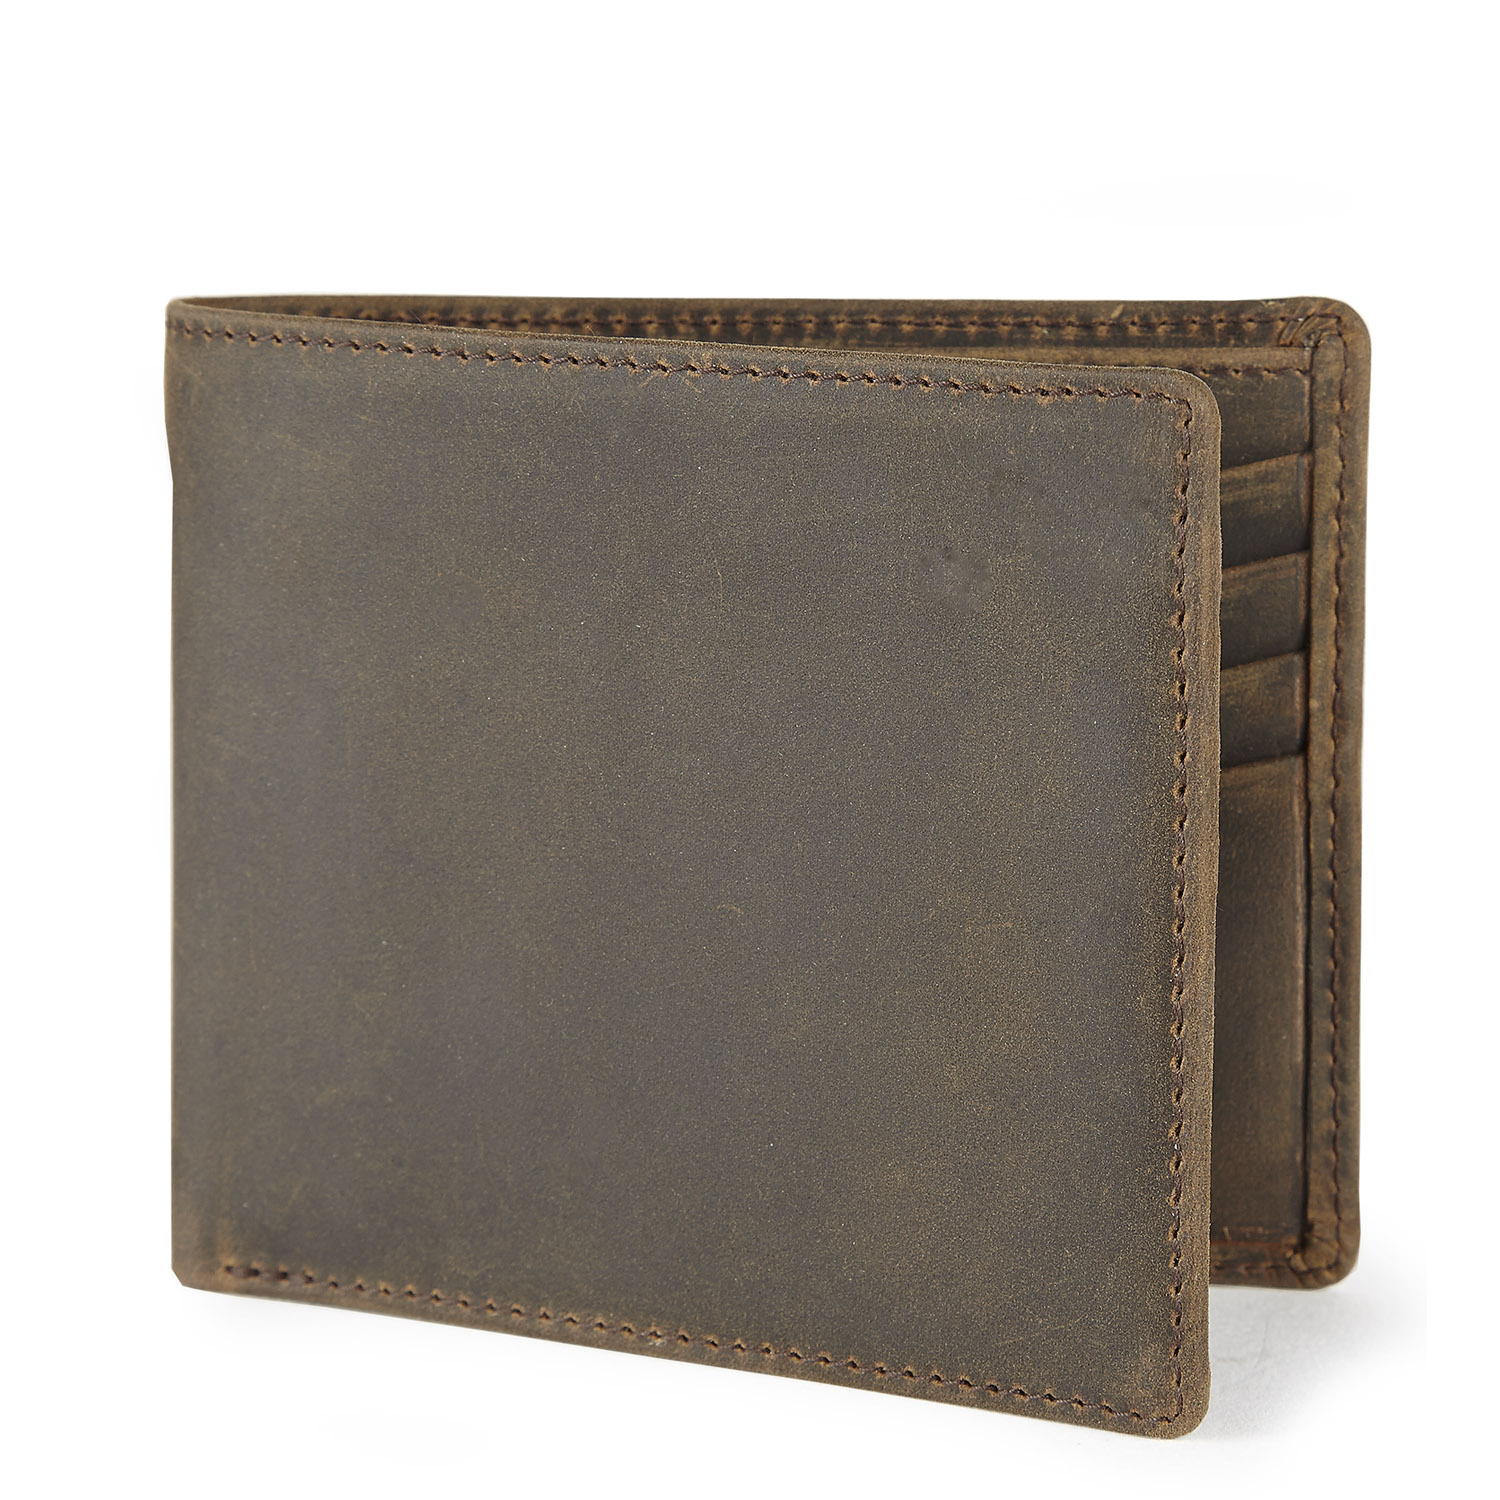 Tusting Distressed Leather Wallet